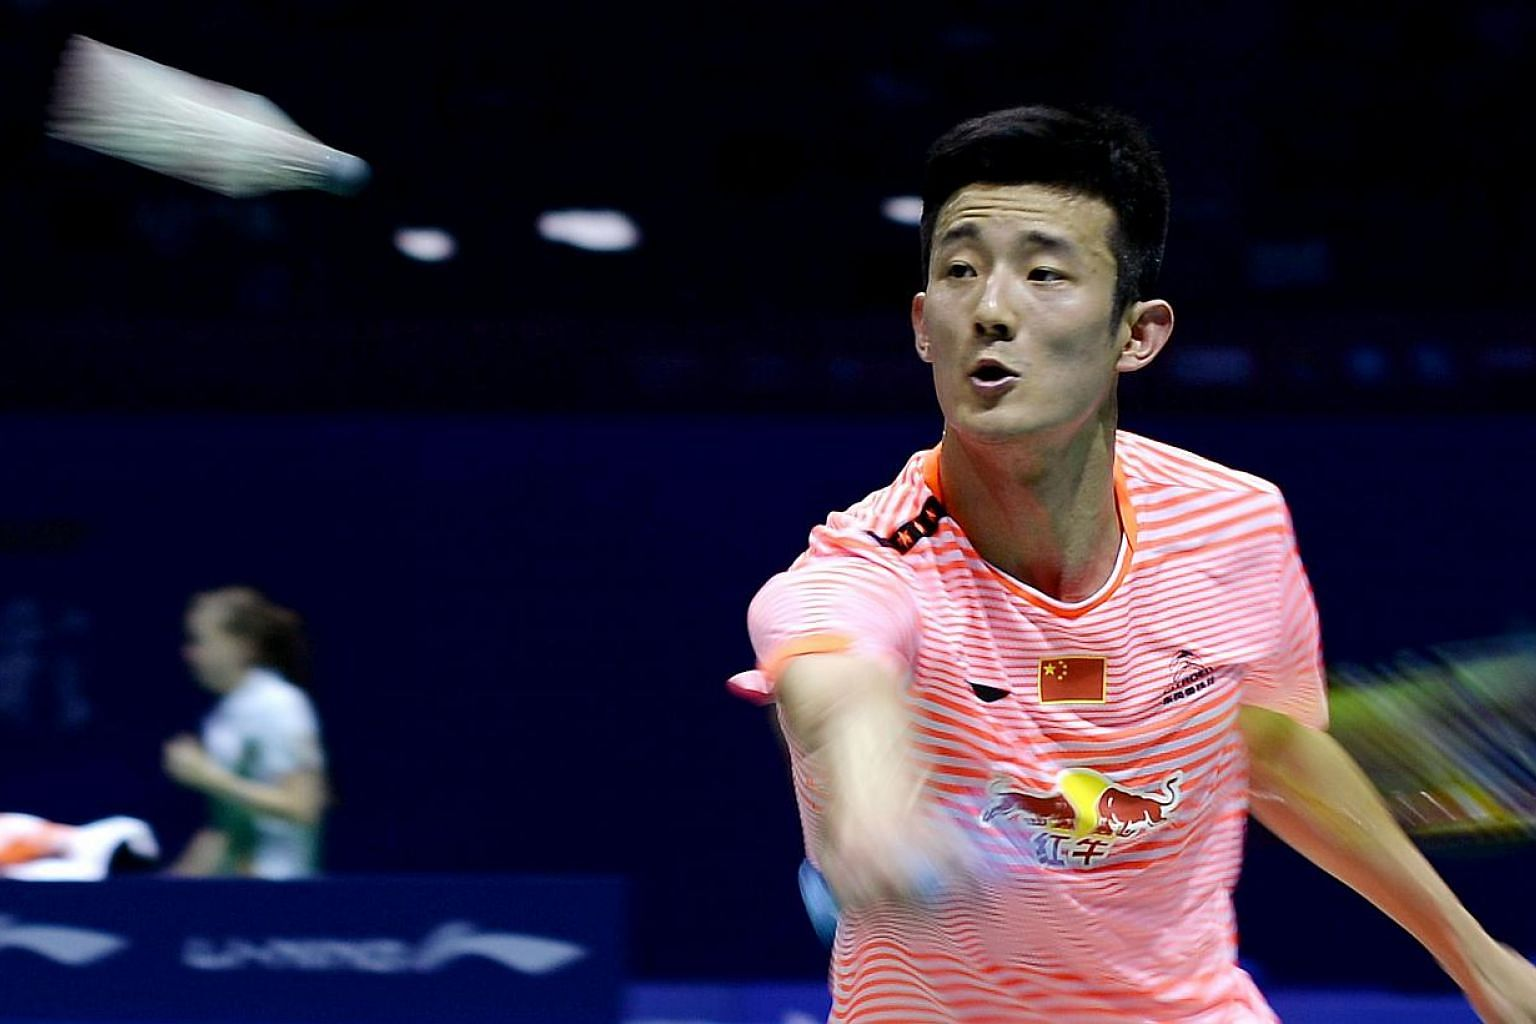 China's Chen Long returns the shuttlecock to Thailand's Boonsak Ponsana during their men's single match at the 2015 Sudirman Cup world badminton championships on May 12, 2015. -- PHOTO: AFP